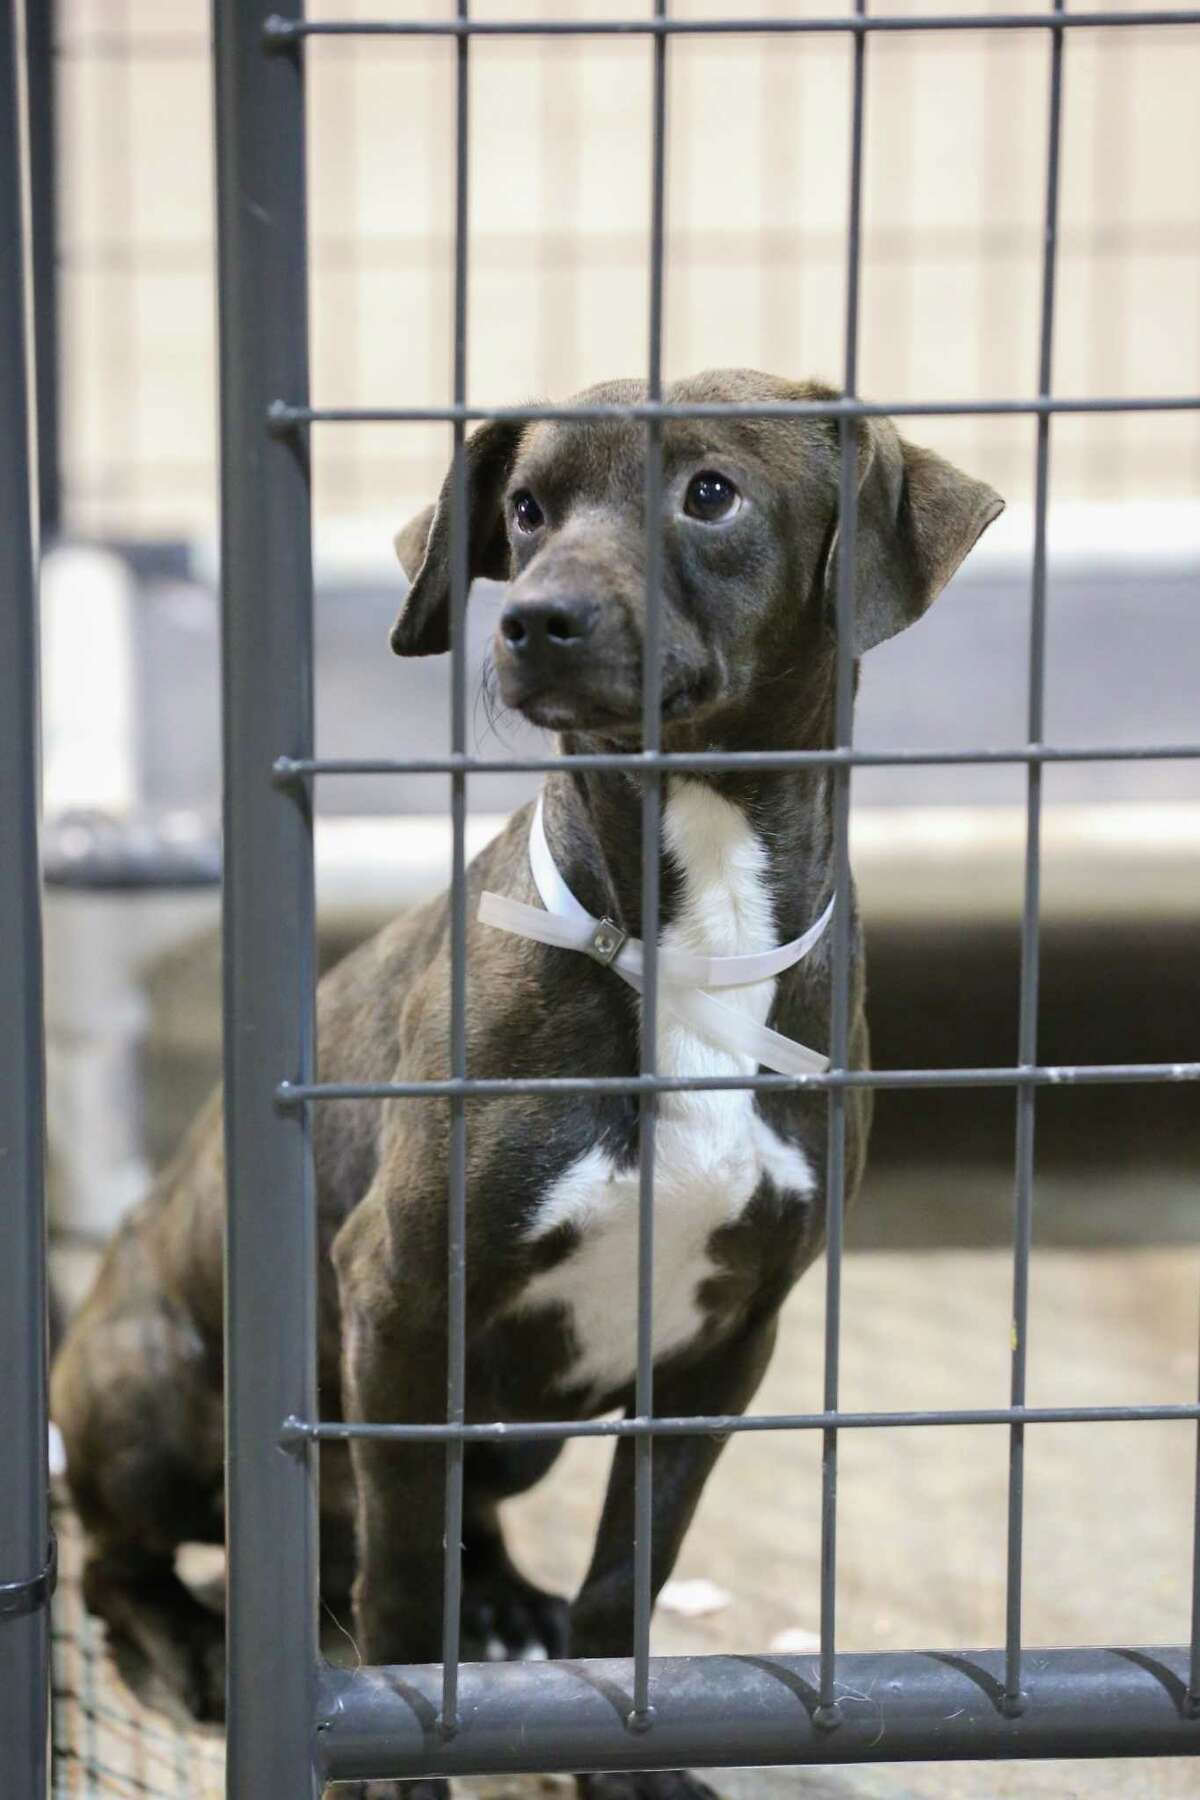 A dog waits at the NRG Arena to be fostered or adopted Thursday, Sept. 28, 2017, in Houston.Best Friends Society still has some 400 dogs and 100 cats at the Pet Reunion Pavilion, which opened a few weeks ago after Hurricane Harvey. The society says it won't leave until every pet is reunited, placed in foster home or adopted. Thursday, Sept. 28, 2017, in Houston. ( Steve Gonzales / Houston Chronicle )